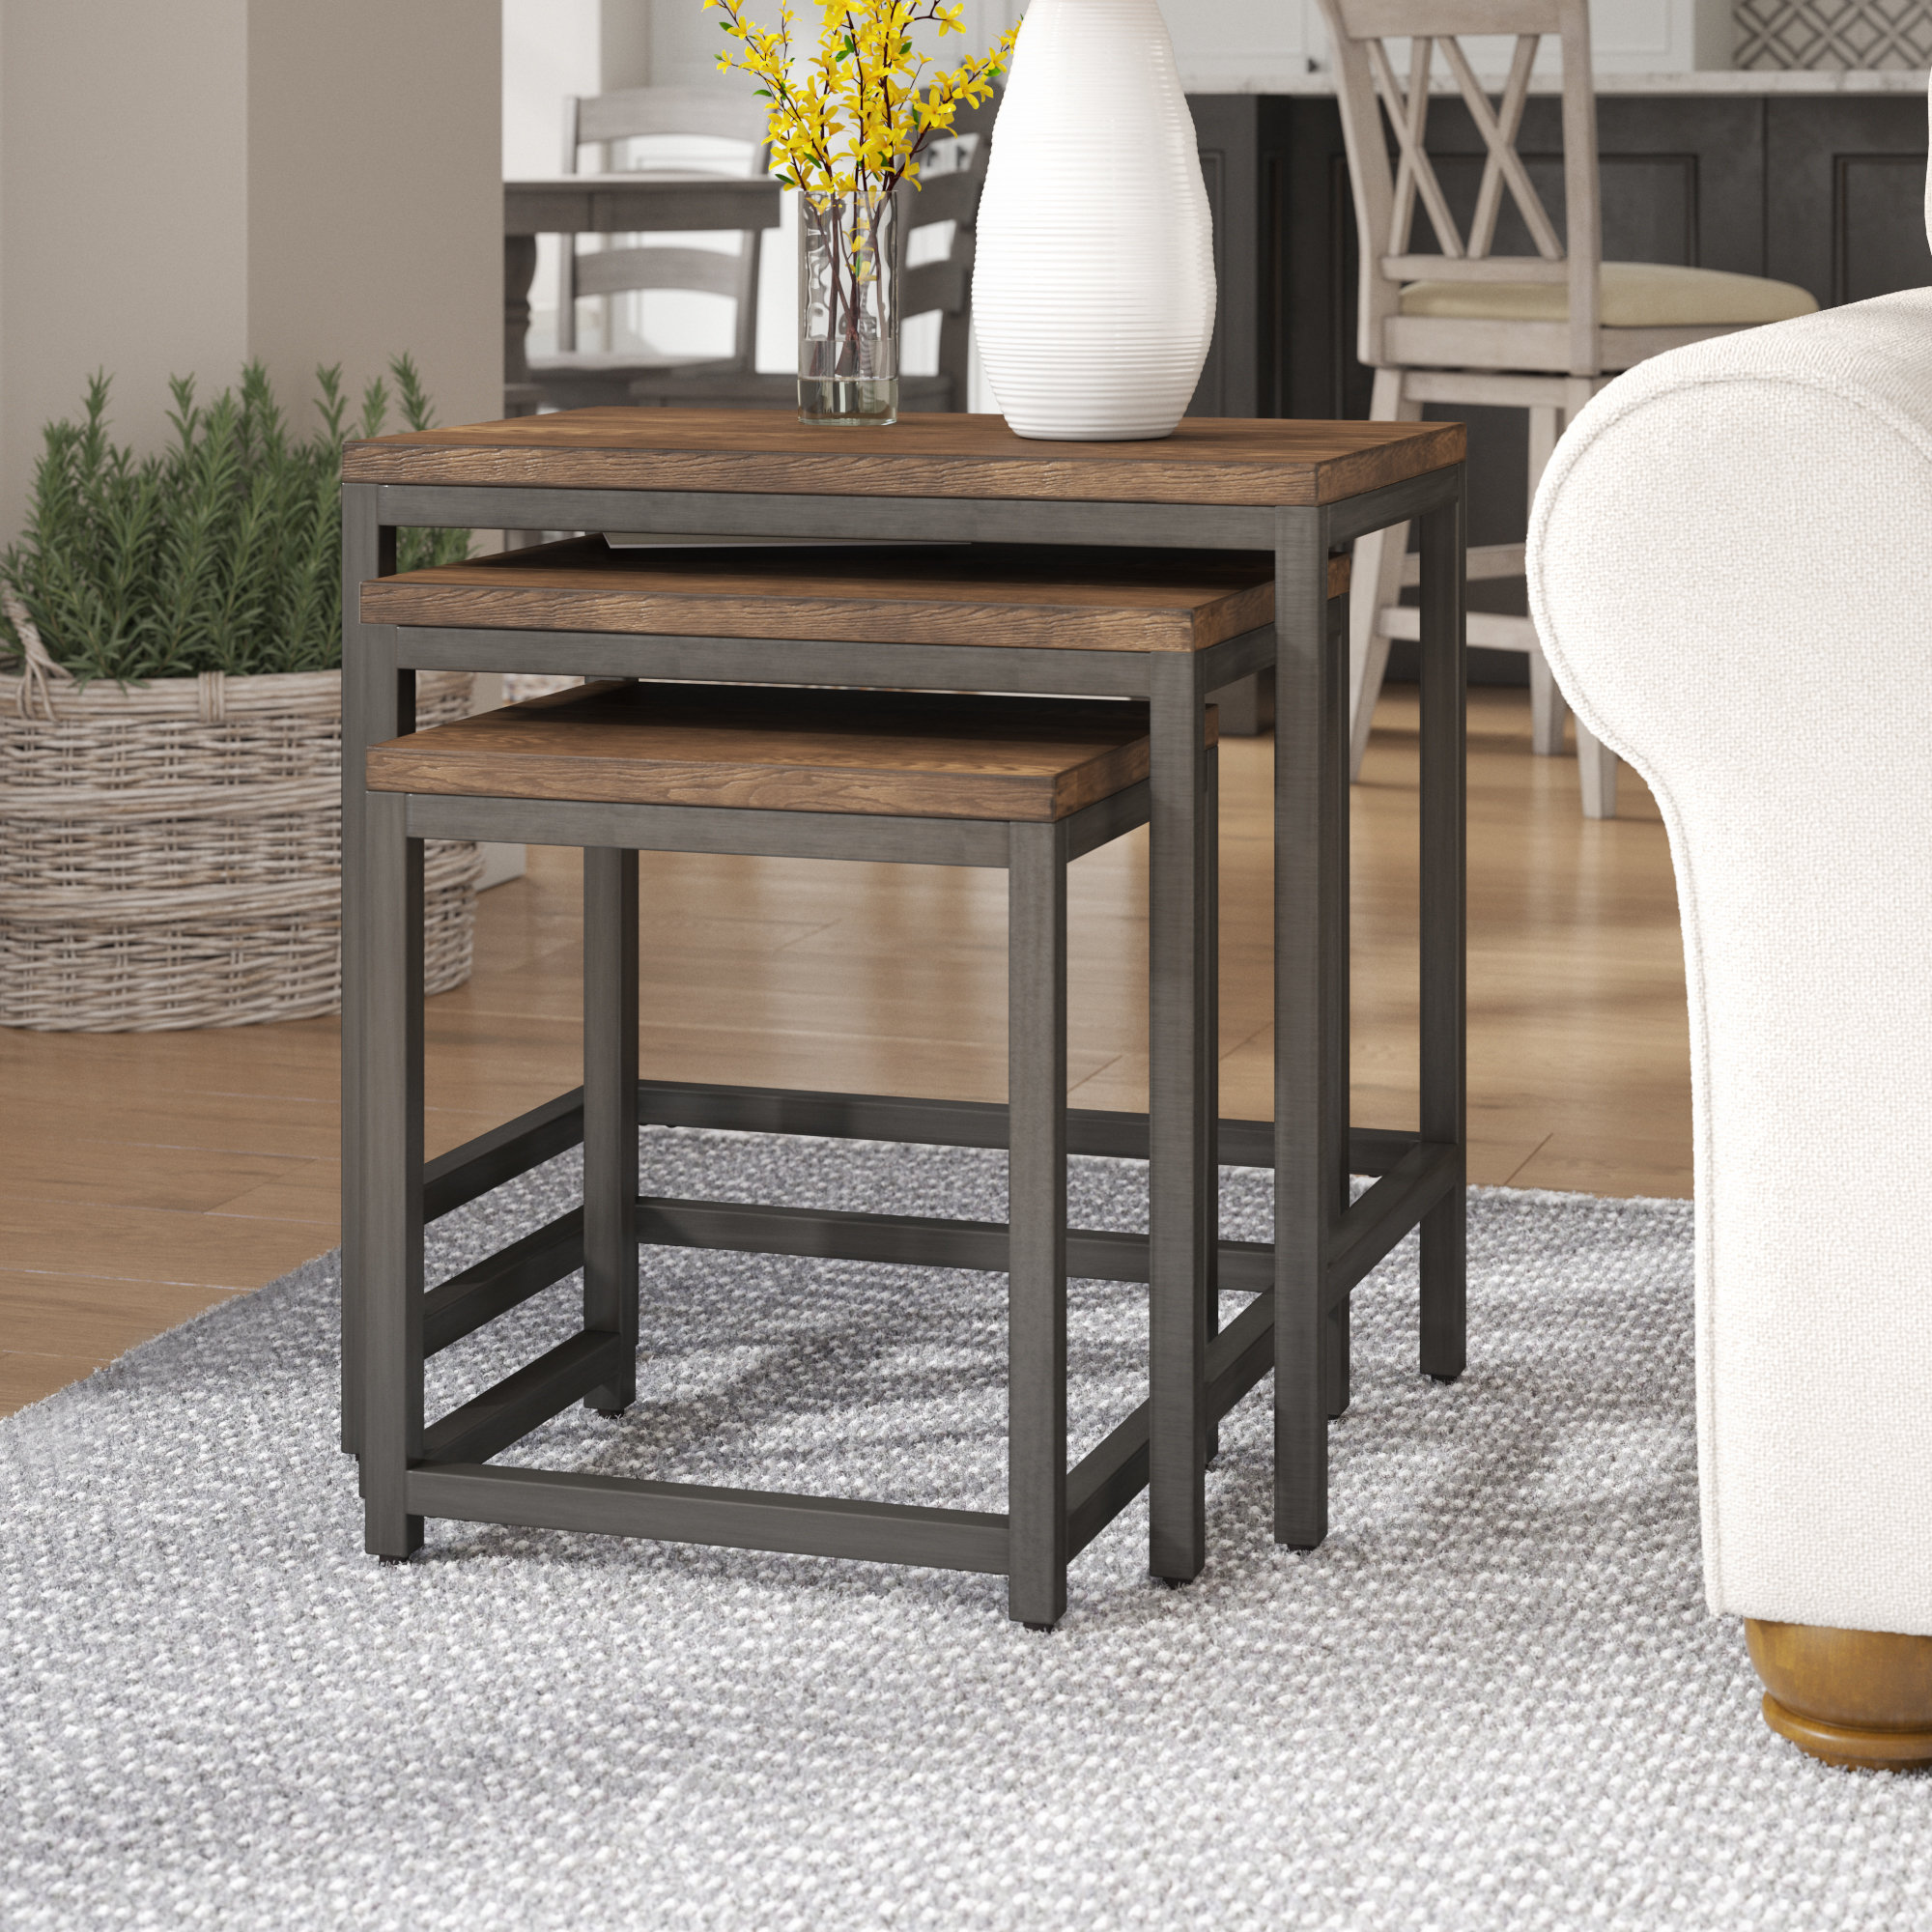 laurel foundry modern farmhouse ekalaka piece nesting tables room essentials stacking accent table reviews small folding patio large dining chairs metal garden battery operated